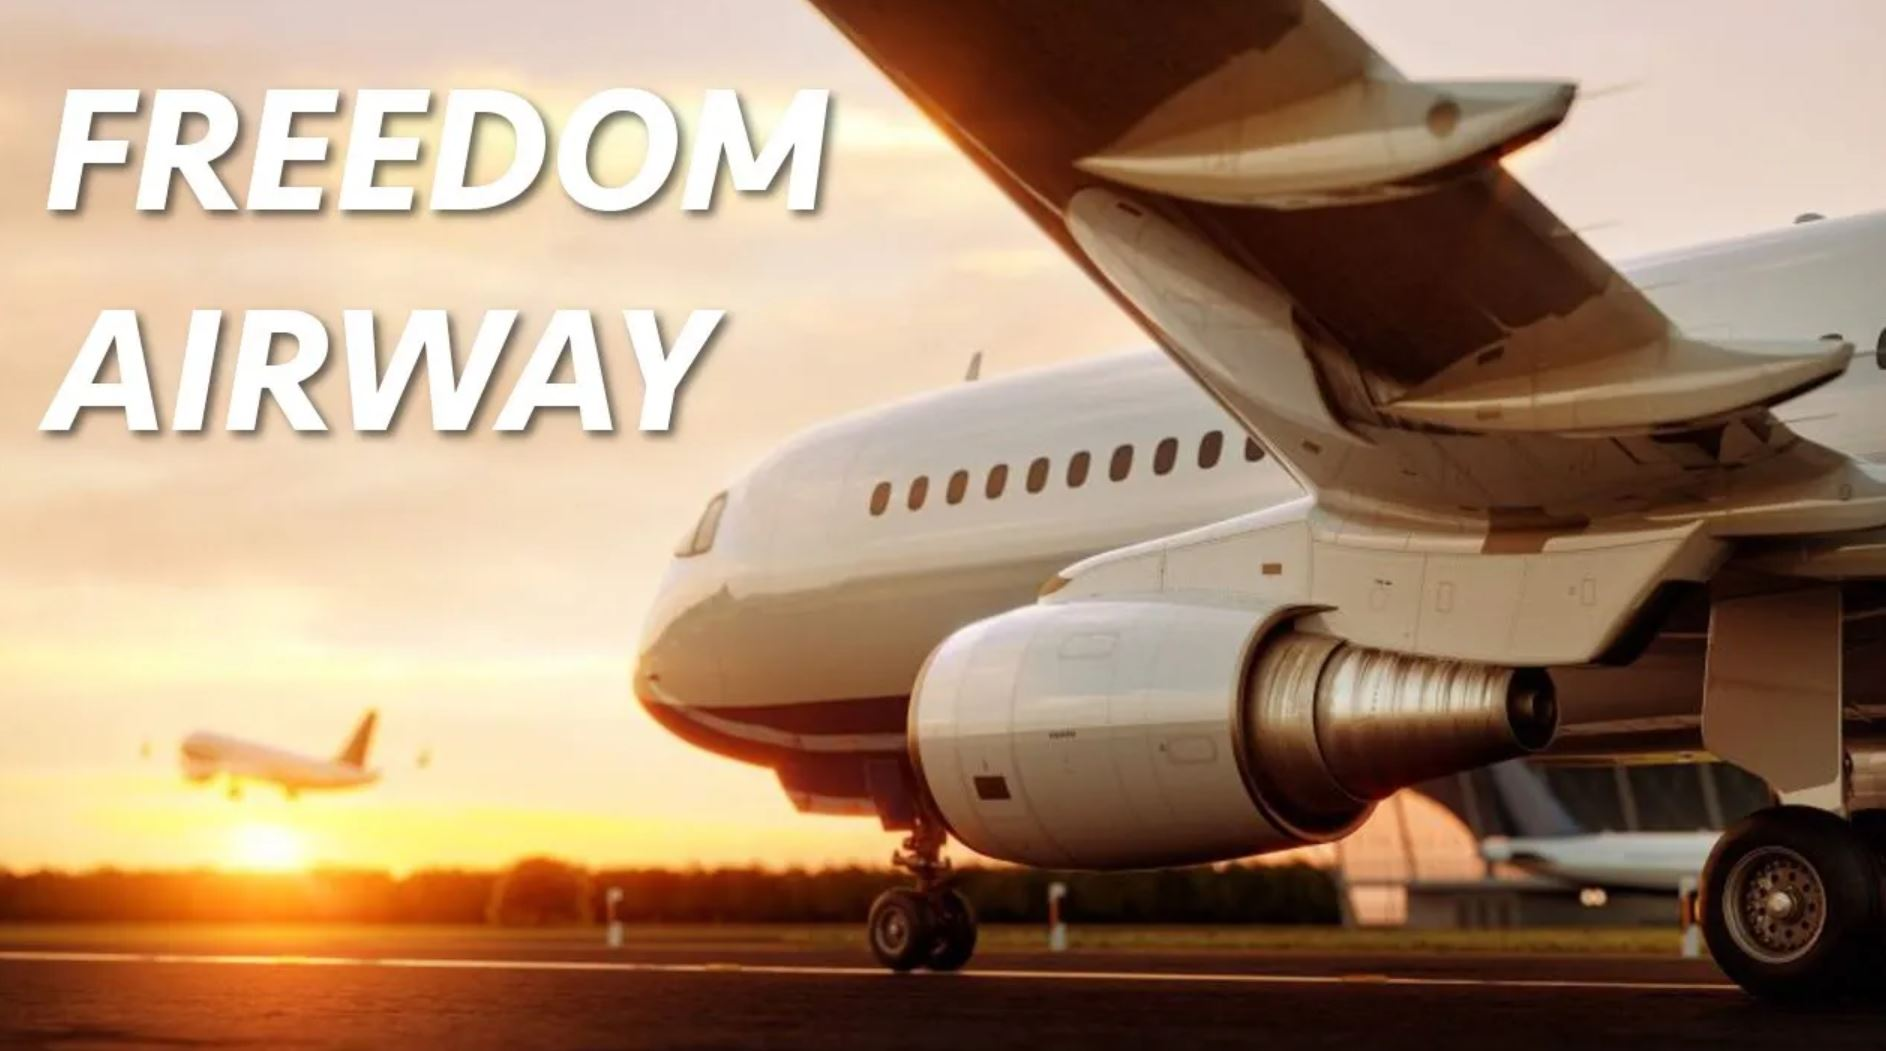 Freedom Airway – Solutions Watch with James Corbett